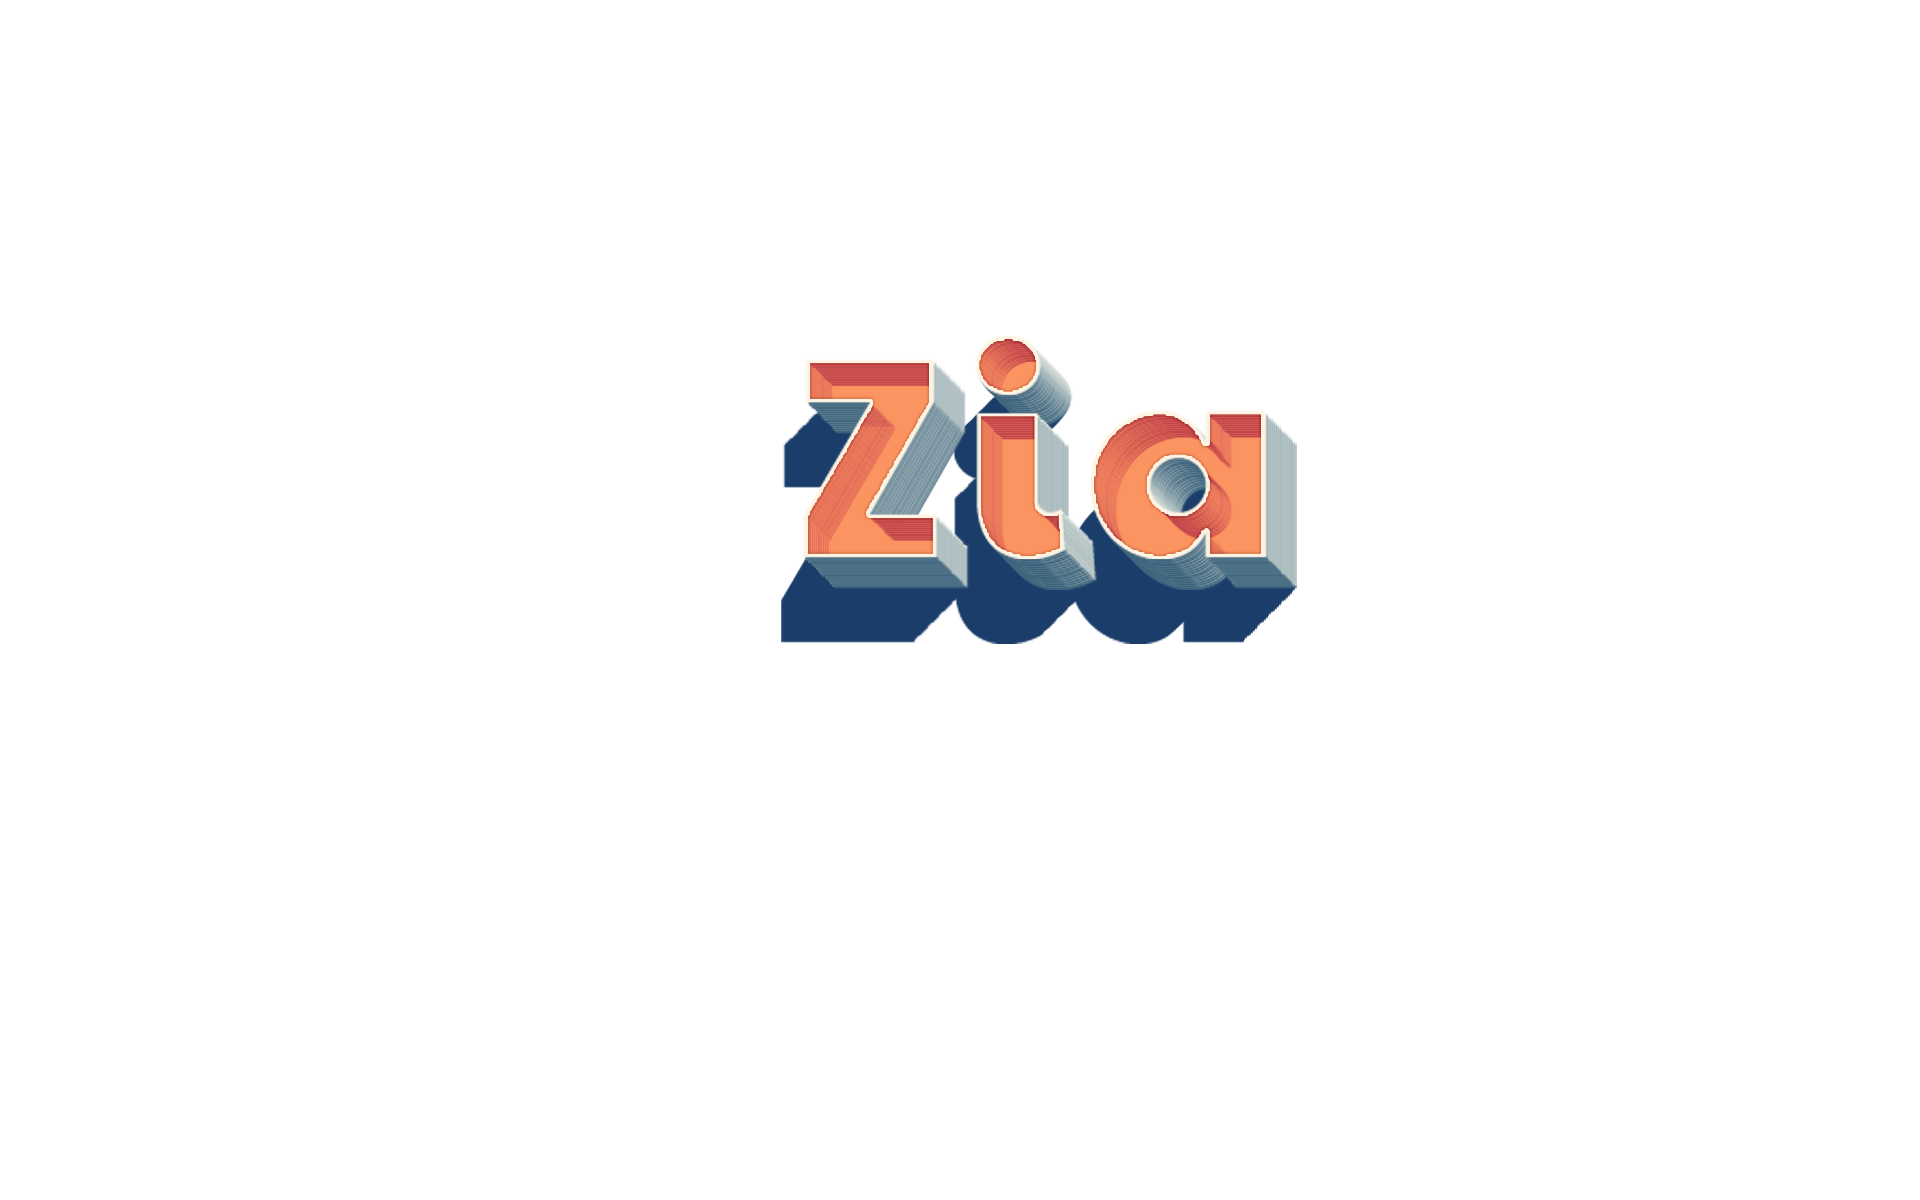 Zia 3D Letter PNG Name.